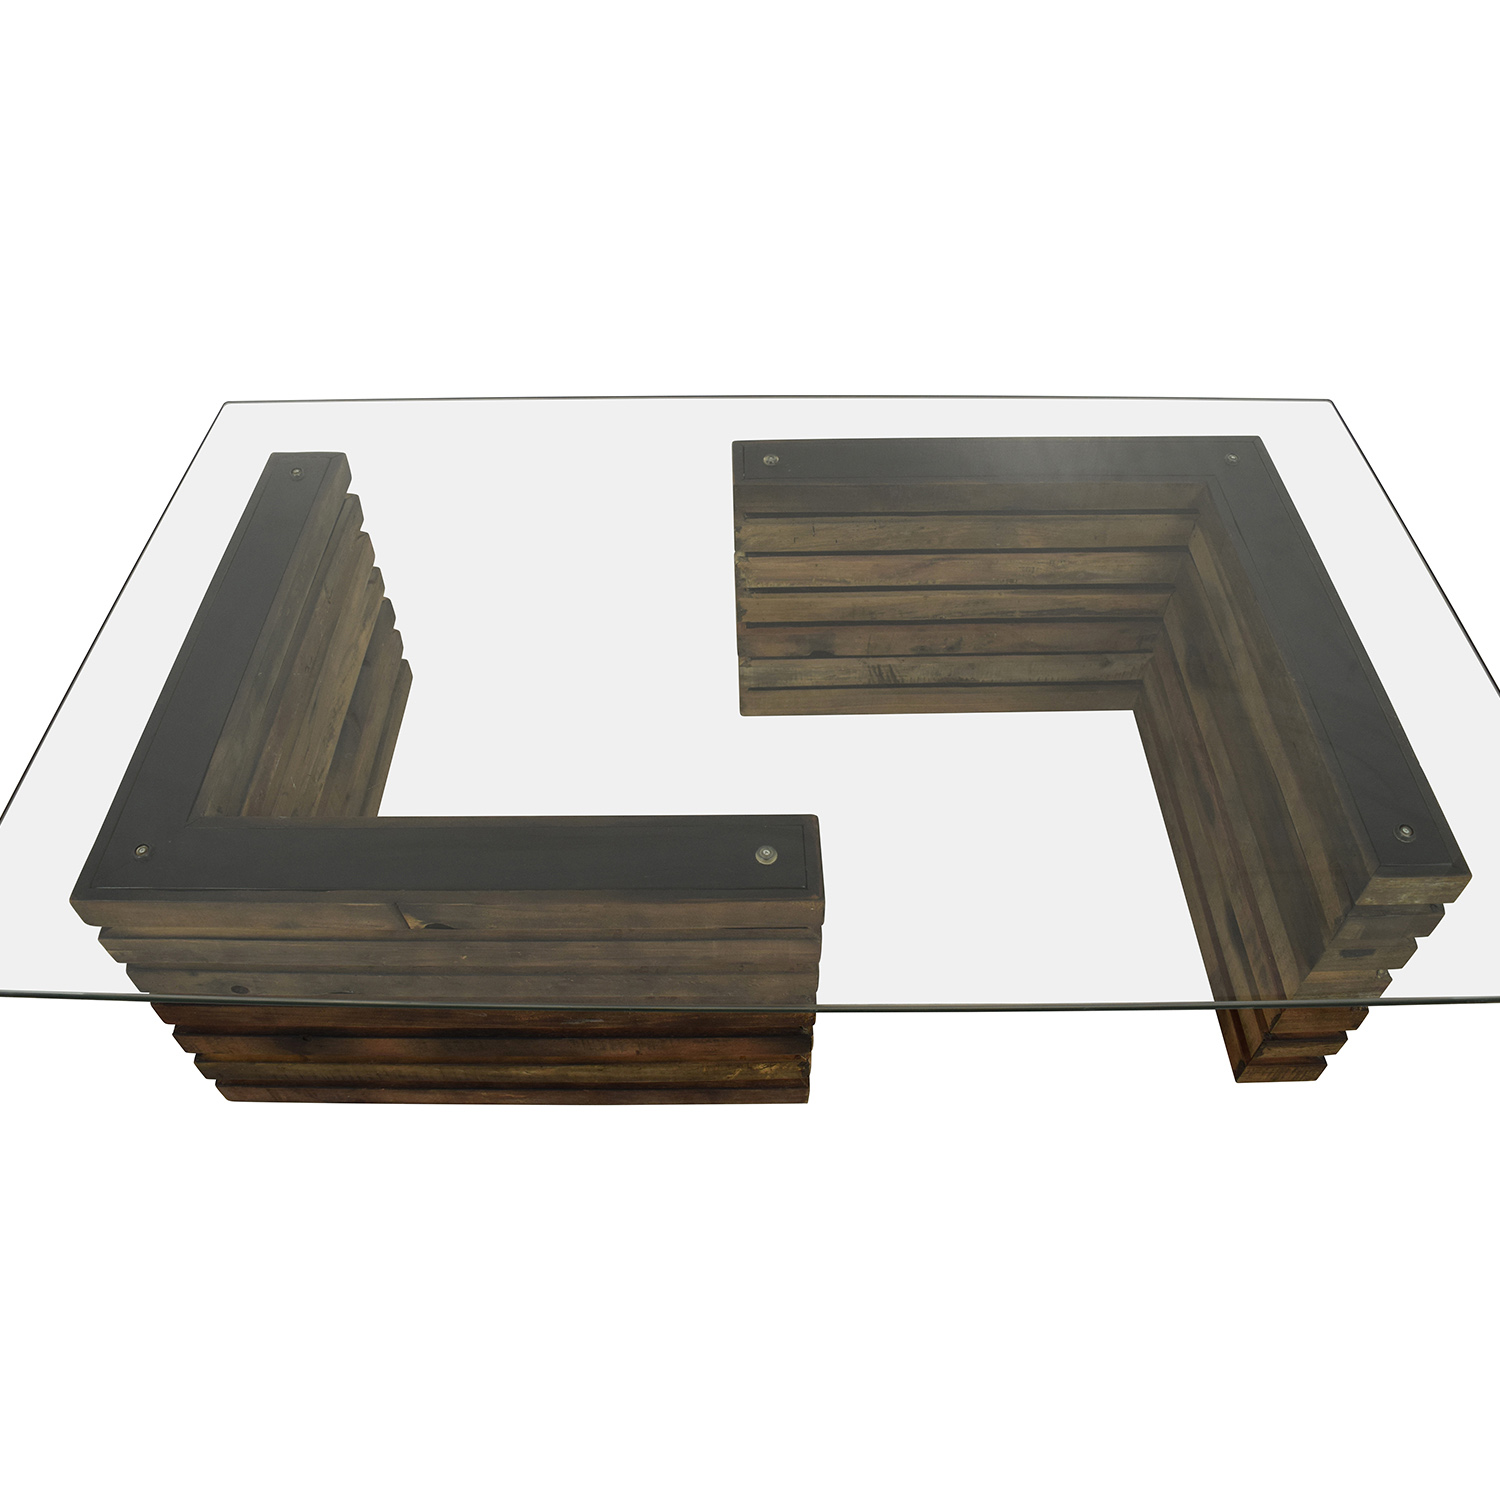 Rustic Wood And Glass Coffee Table 88 Off Rustic Industrial Wood And Glass Coffee Table